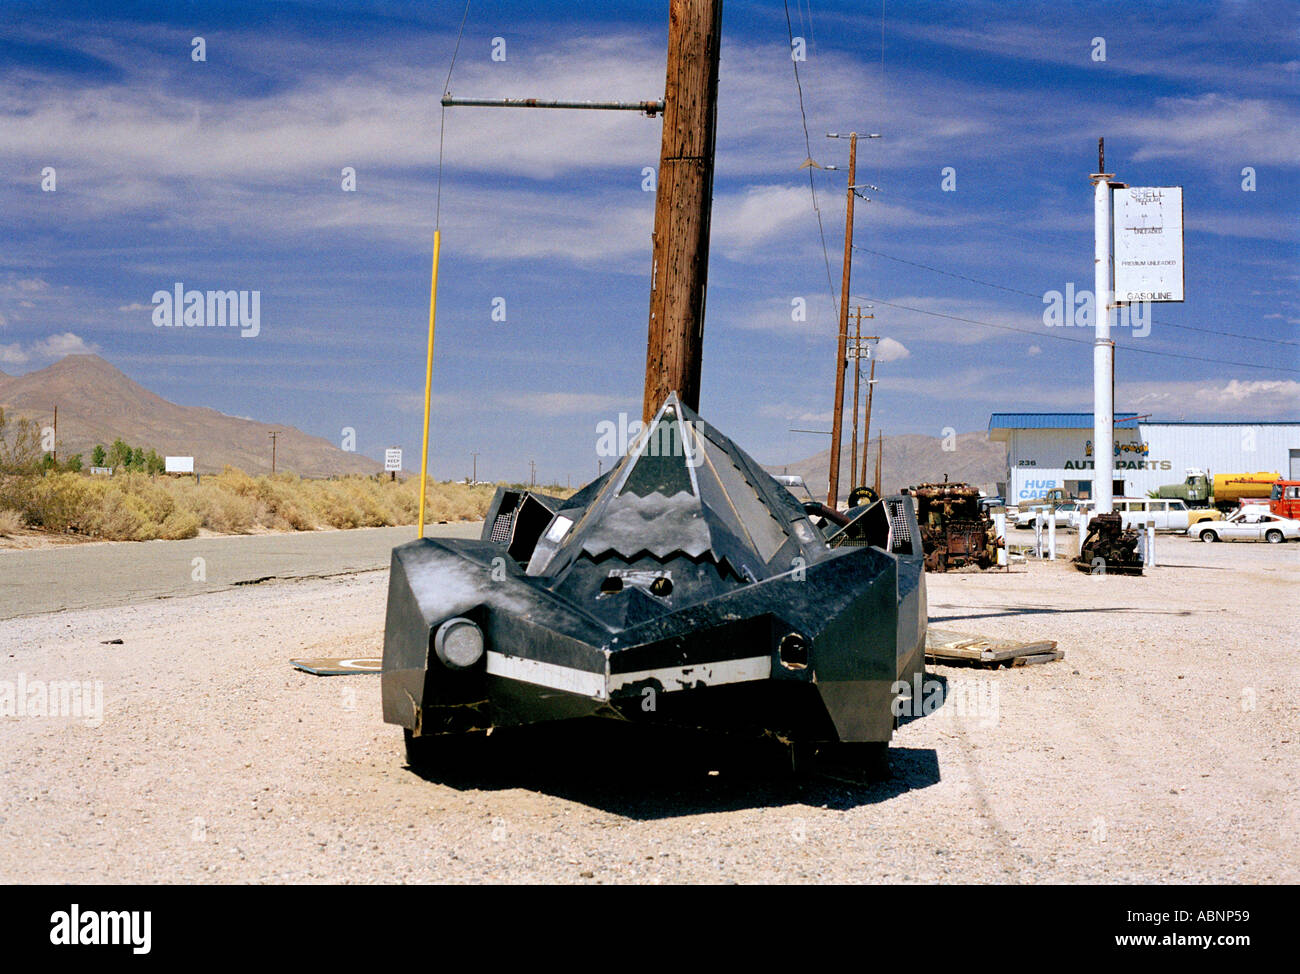 CAR LOOKING LIKE A STEALTH BOMBER CAR IN DESERT - Stock Image